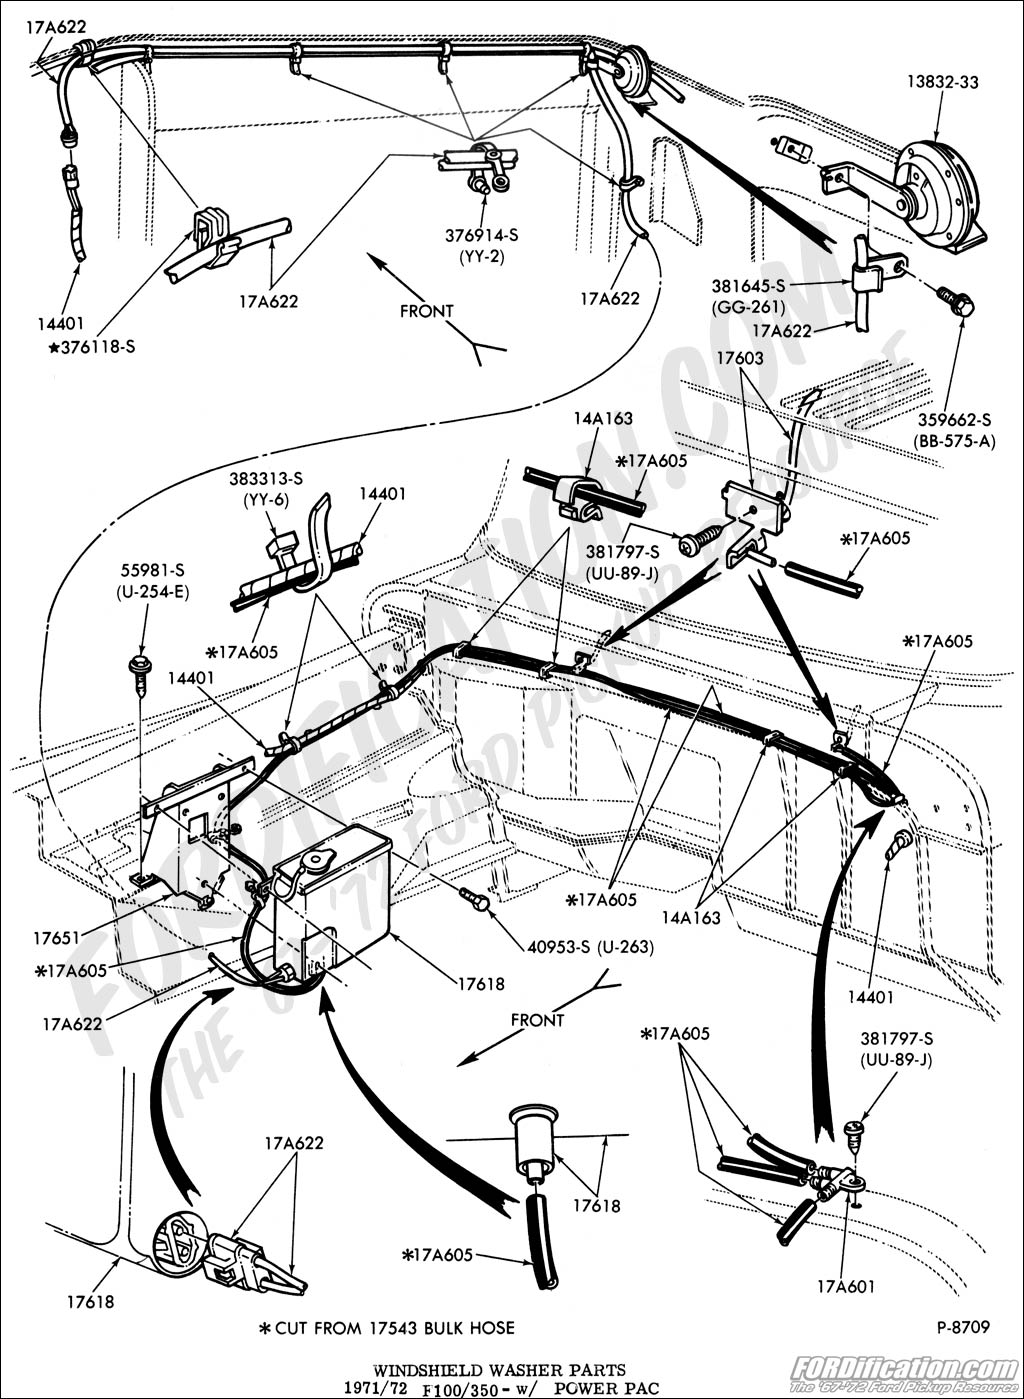 co op e3 tractor ignition switch wiring diagram wiring library Ford 3000 Tractor Generator Wiring ford truck technical drawings and schematics section i